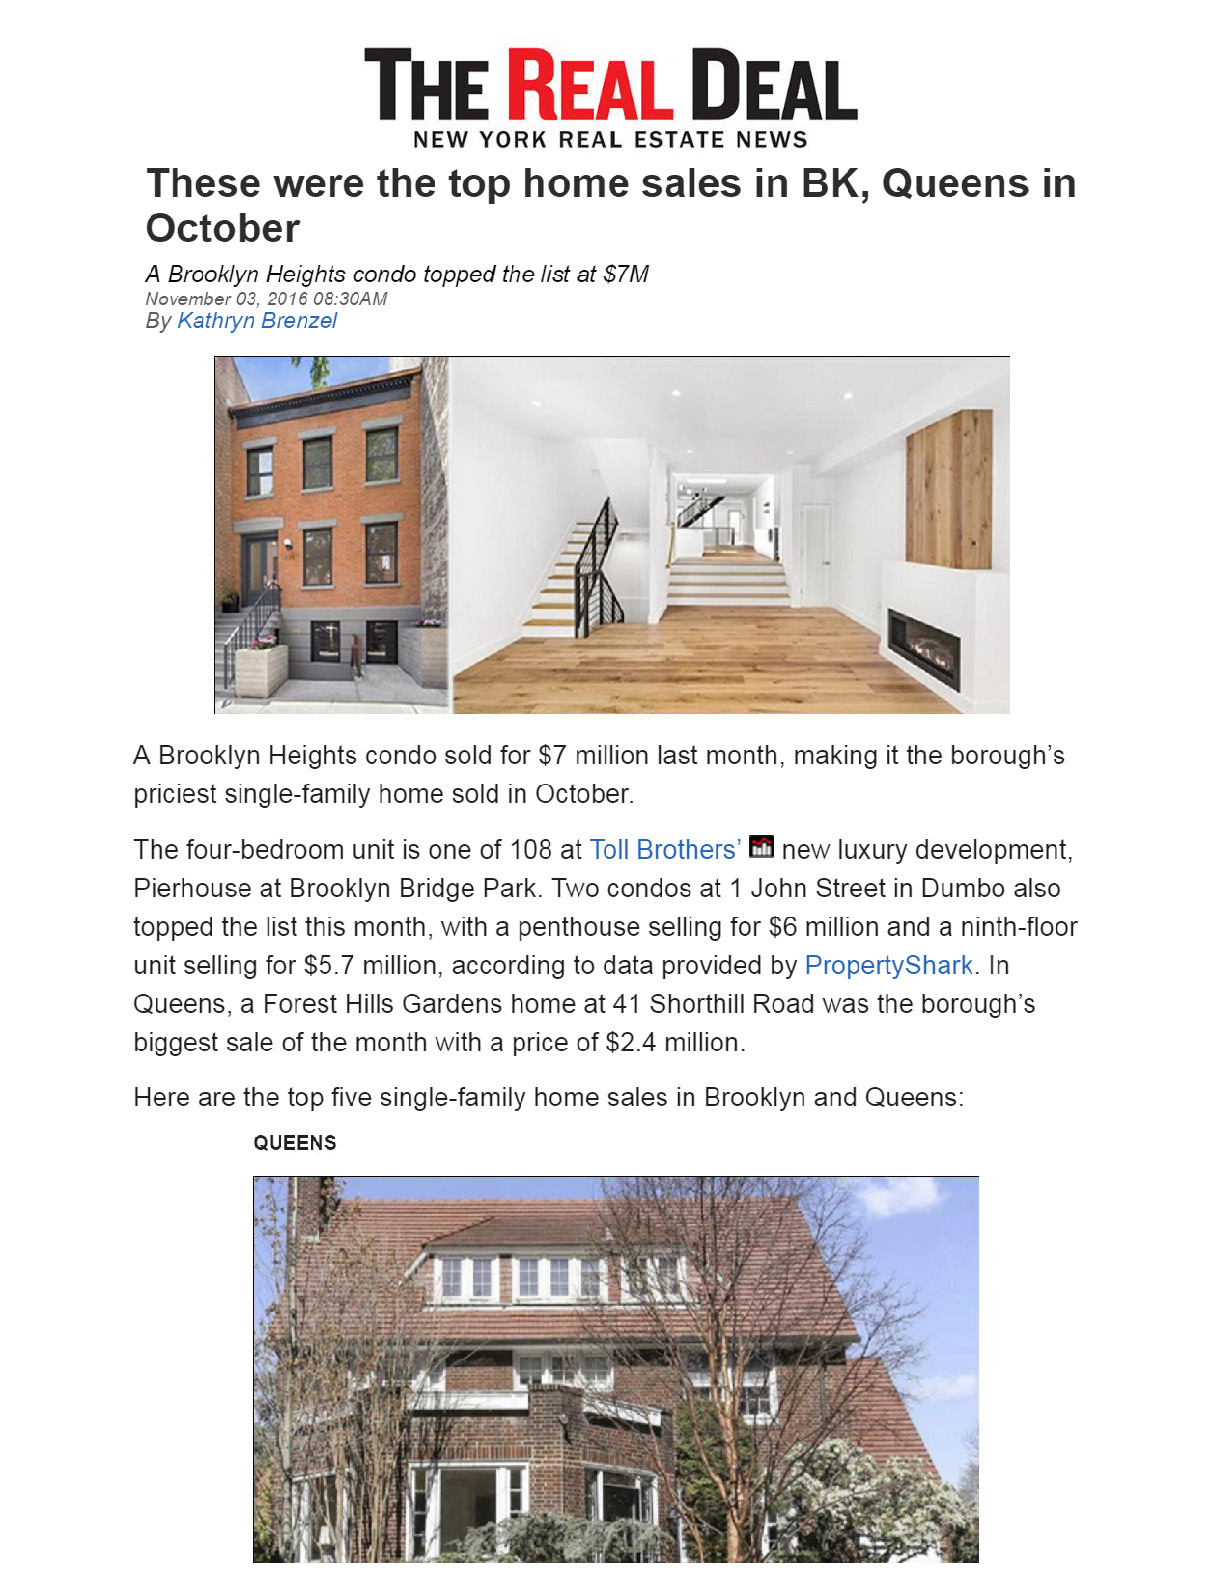 the-real-deal-these-were-the-top-home-sales-in-bk-queens-in-october-11-3-2016-1_page_1